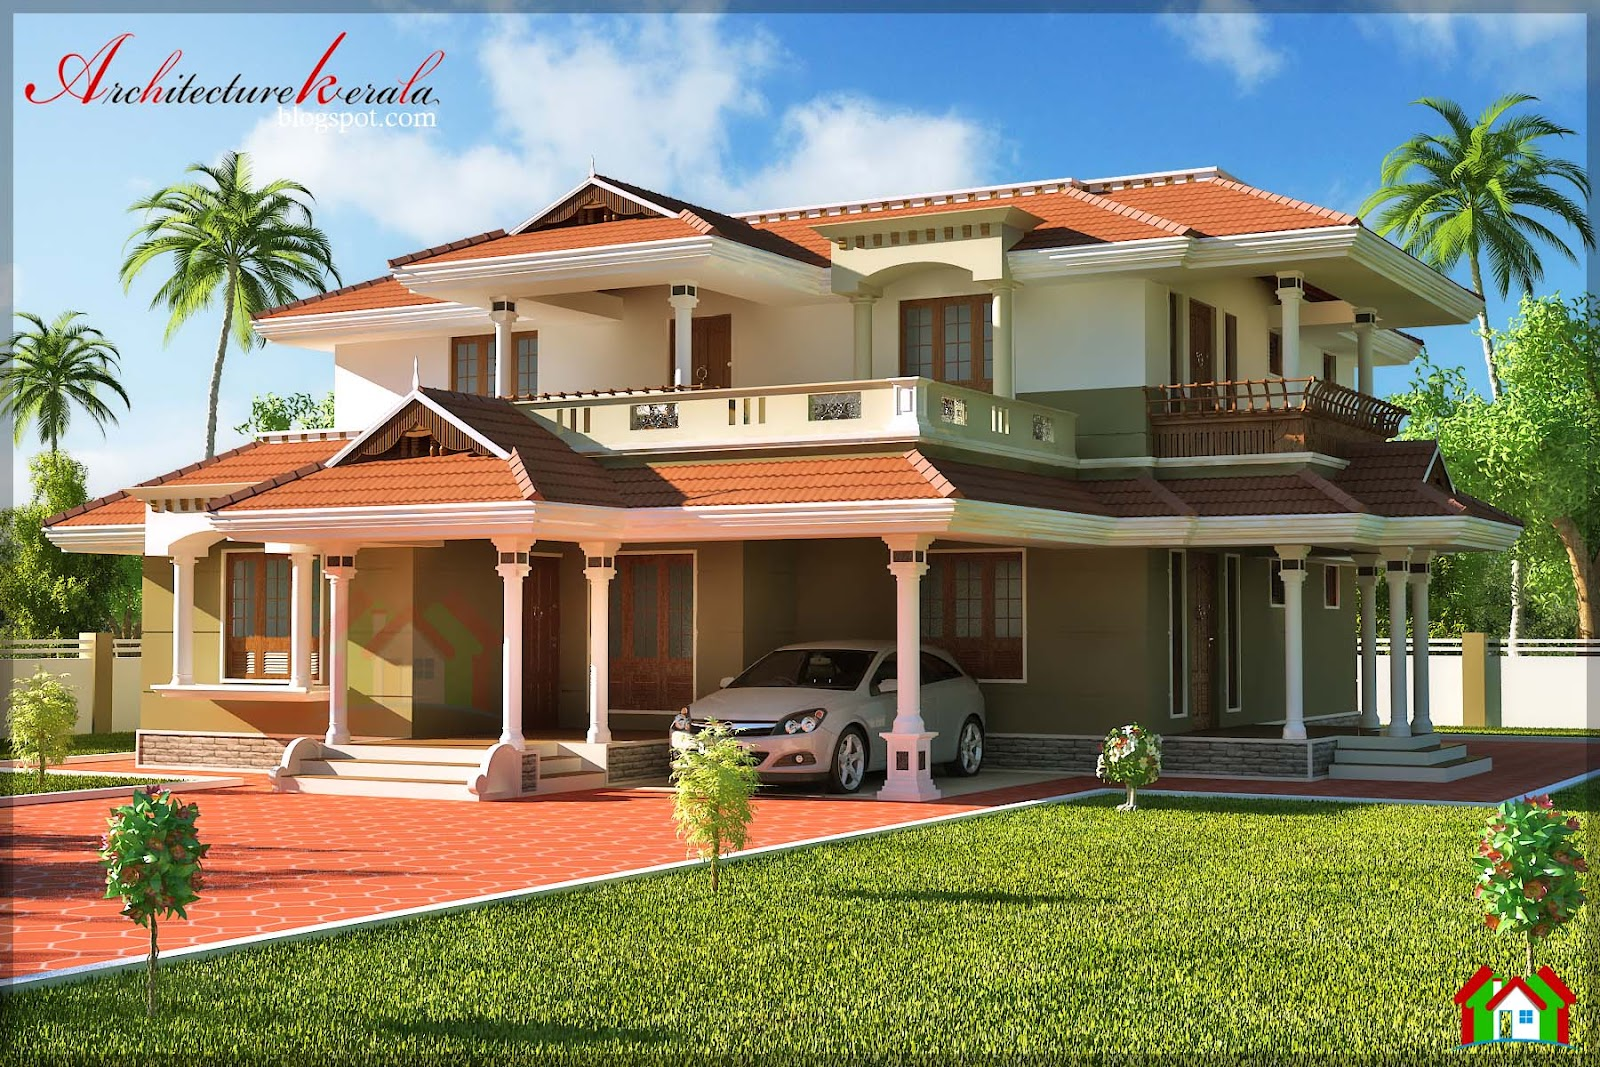 Bed room traditional style house design architecture kerala for Traditional house style